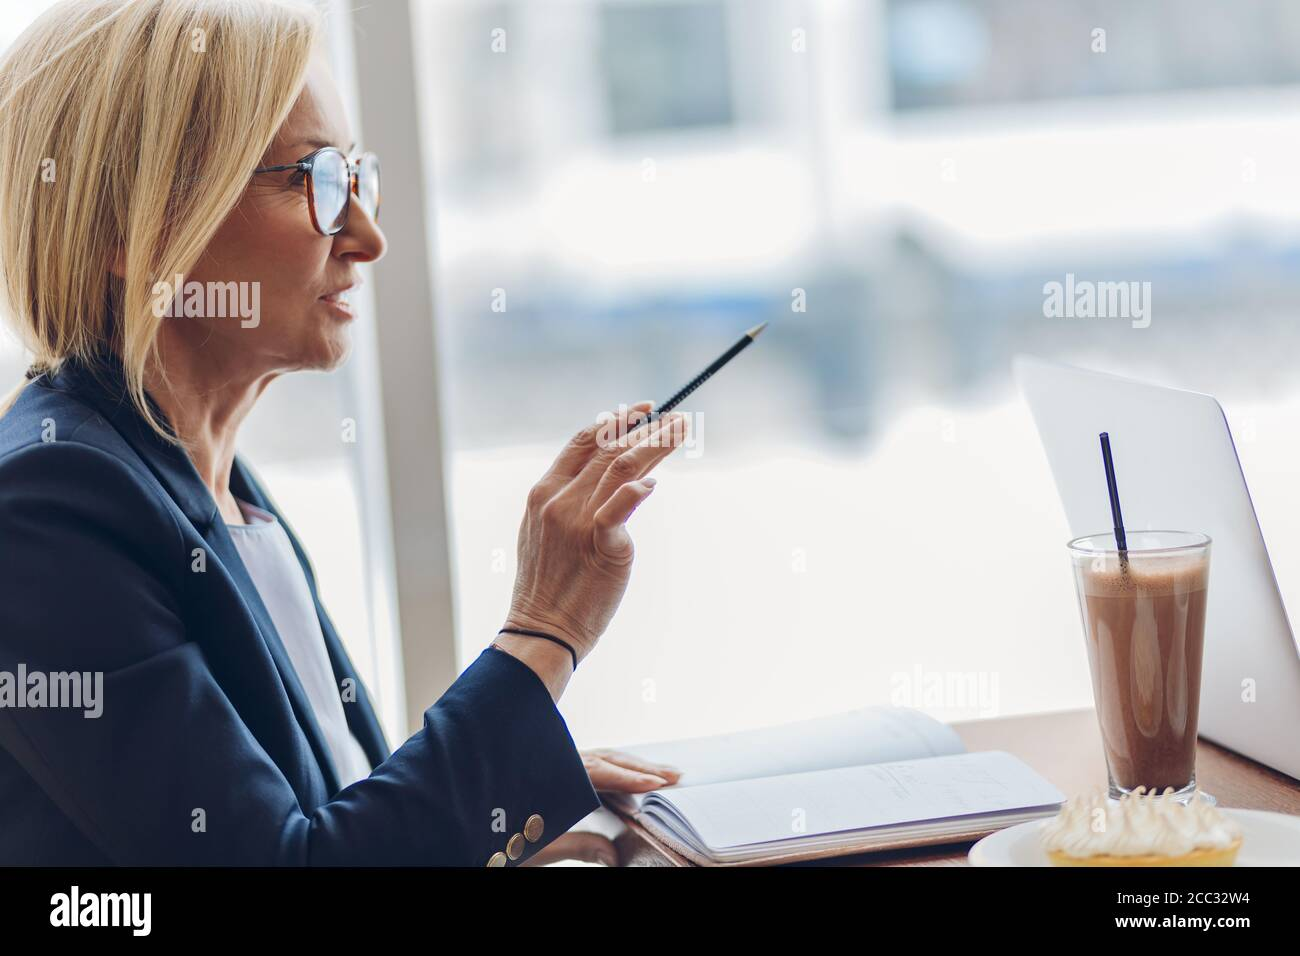 talented psychologist consulting a client in the cafe. close up side view photo. copy space. old smart woman instructing a customer Stock Photo